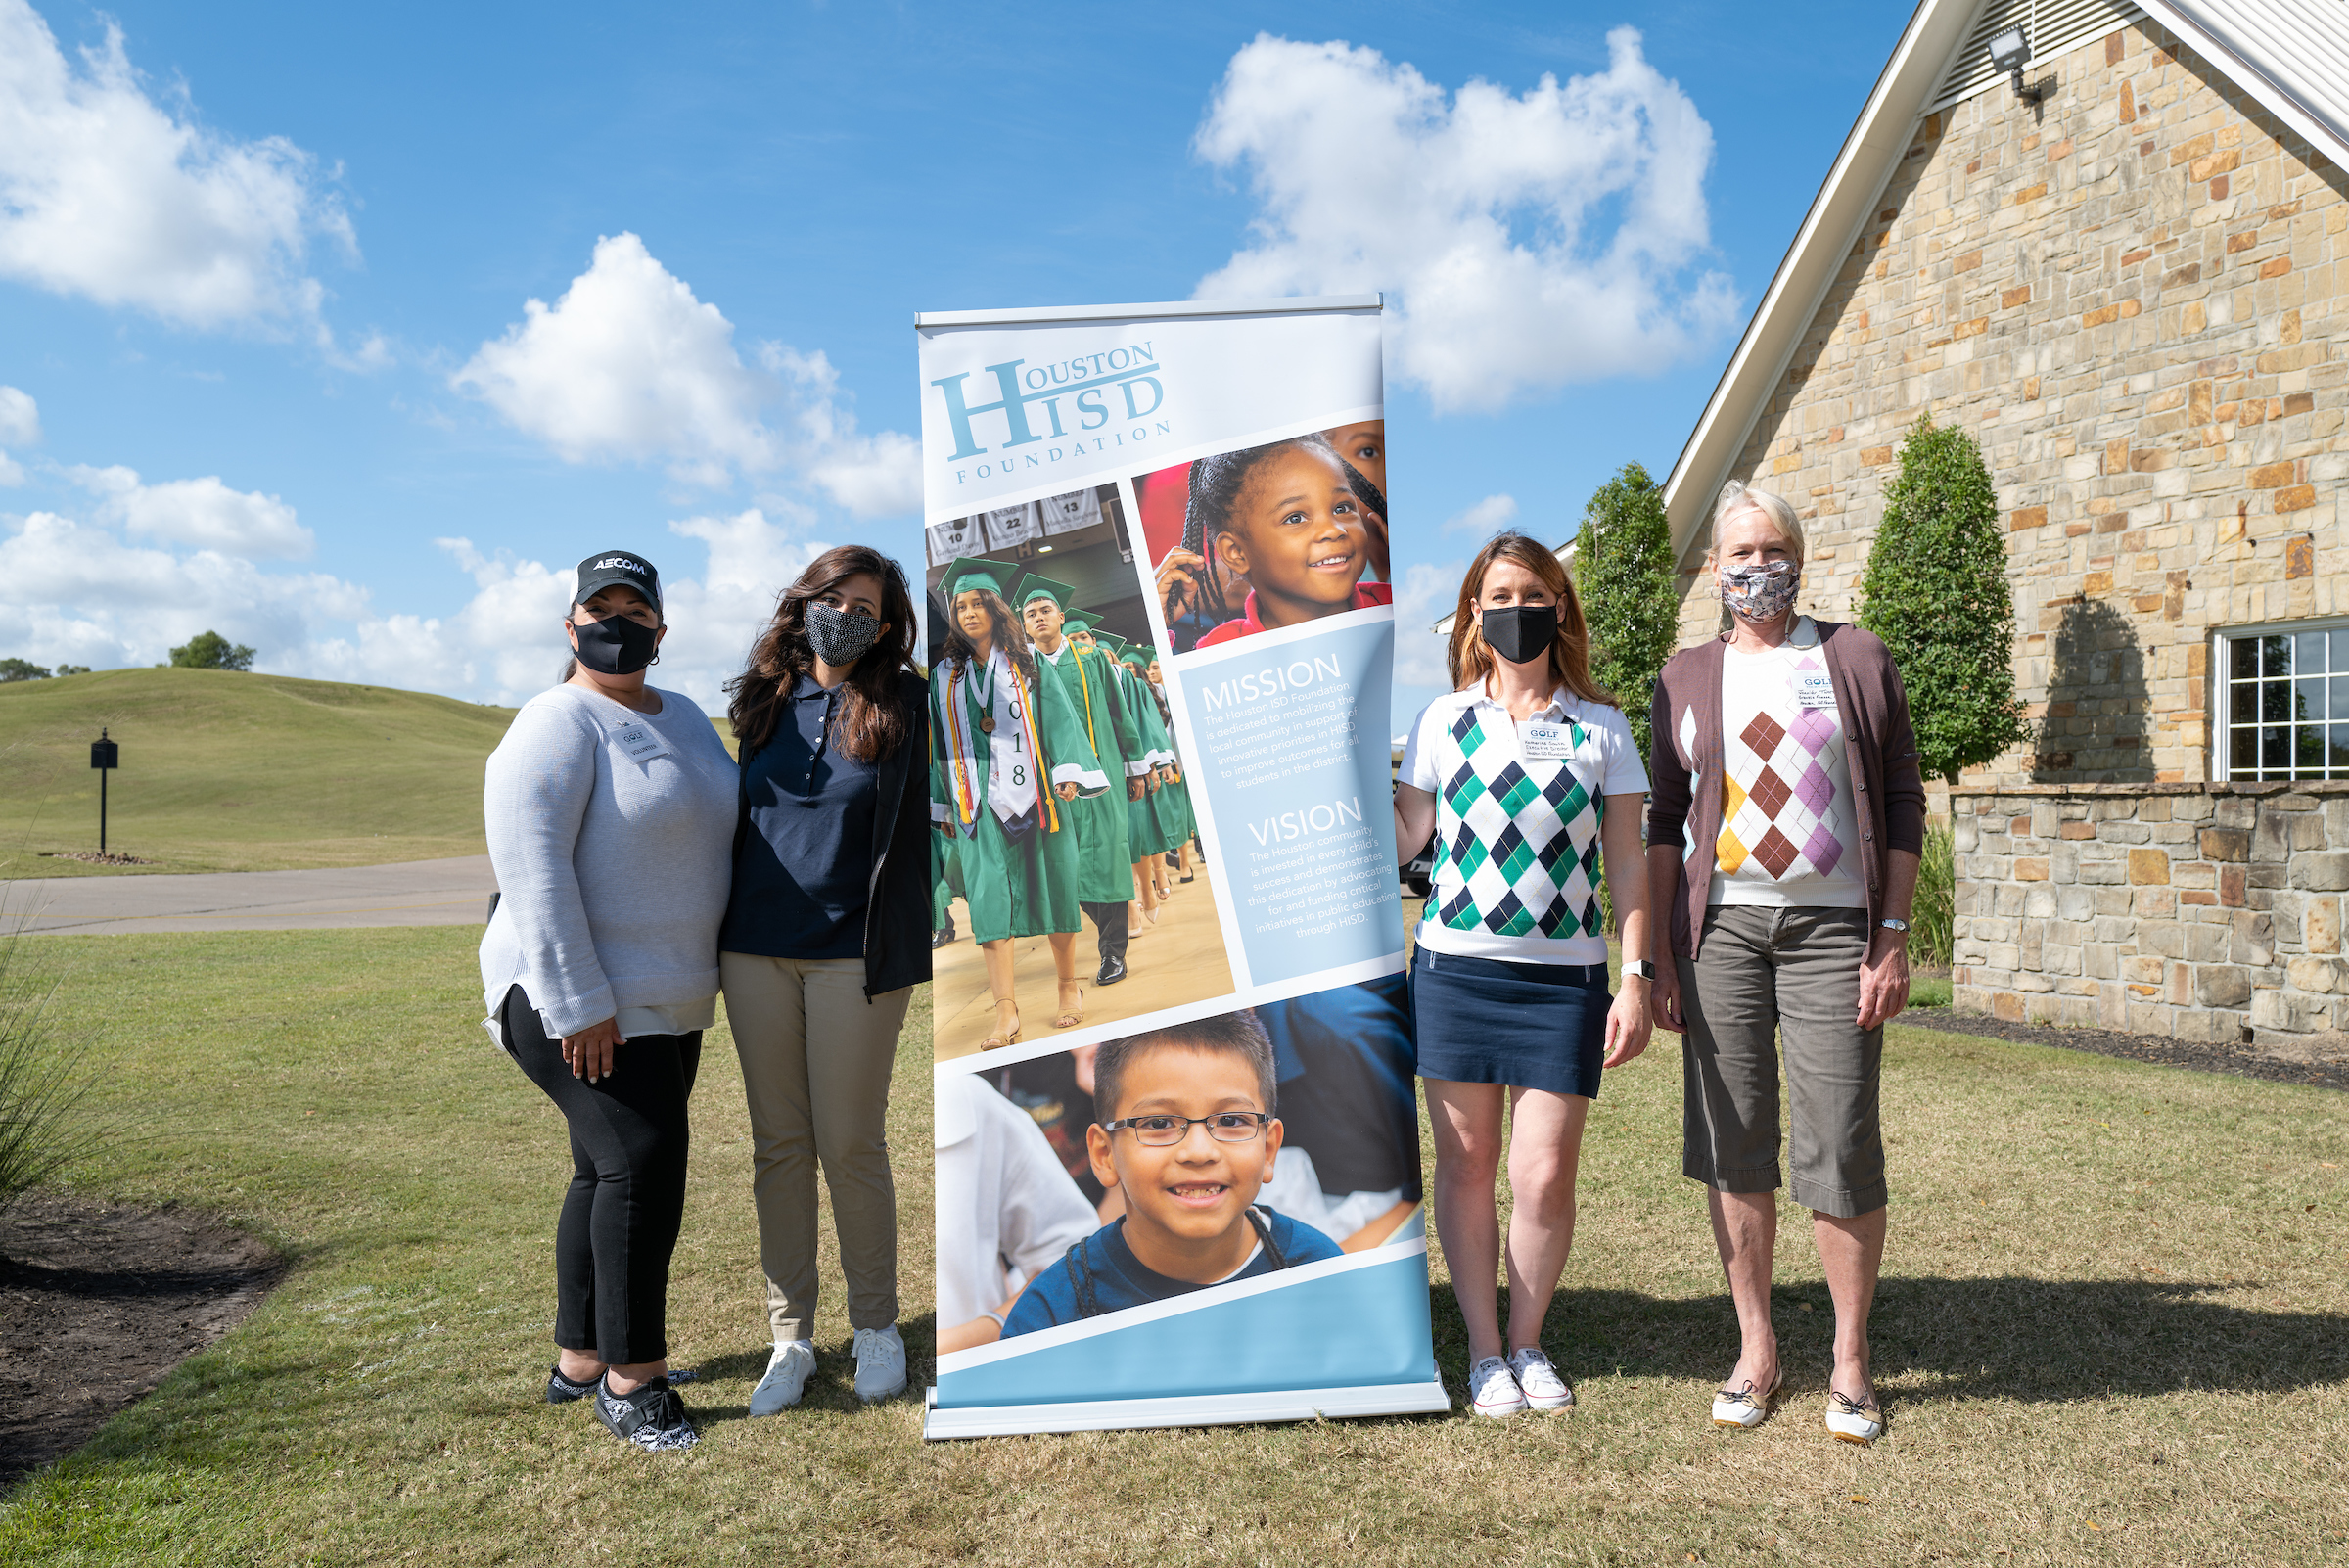 15th Annual HISD Foundation Golf Tournament gallery image #89